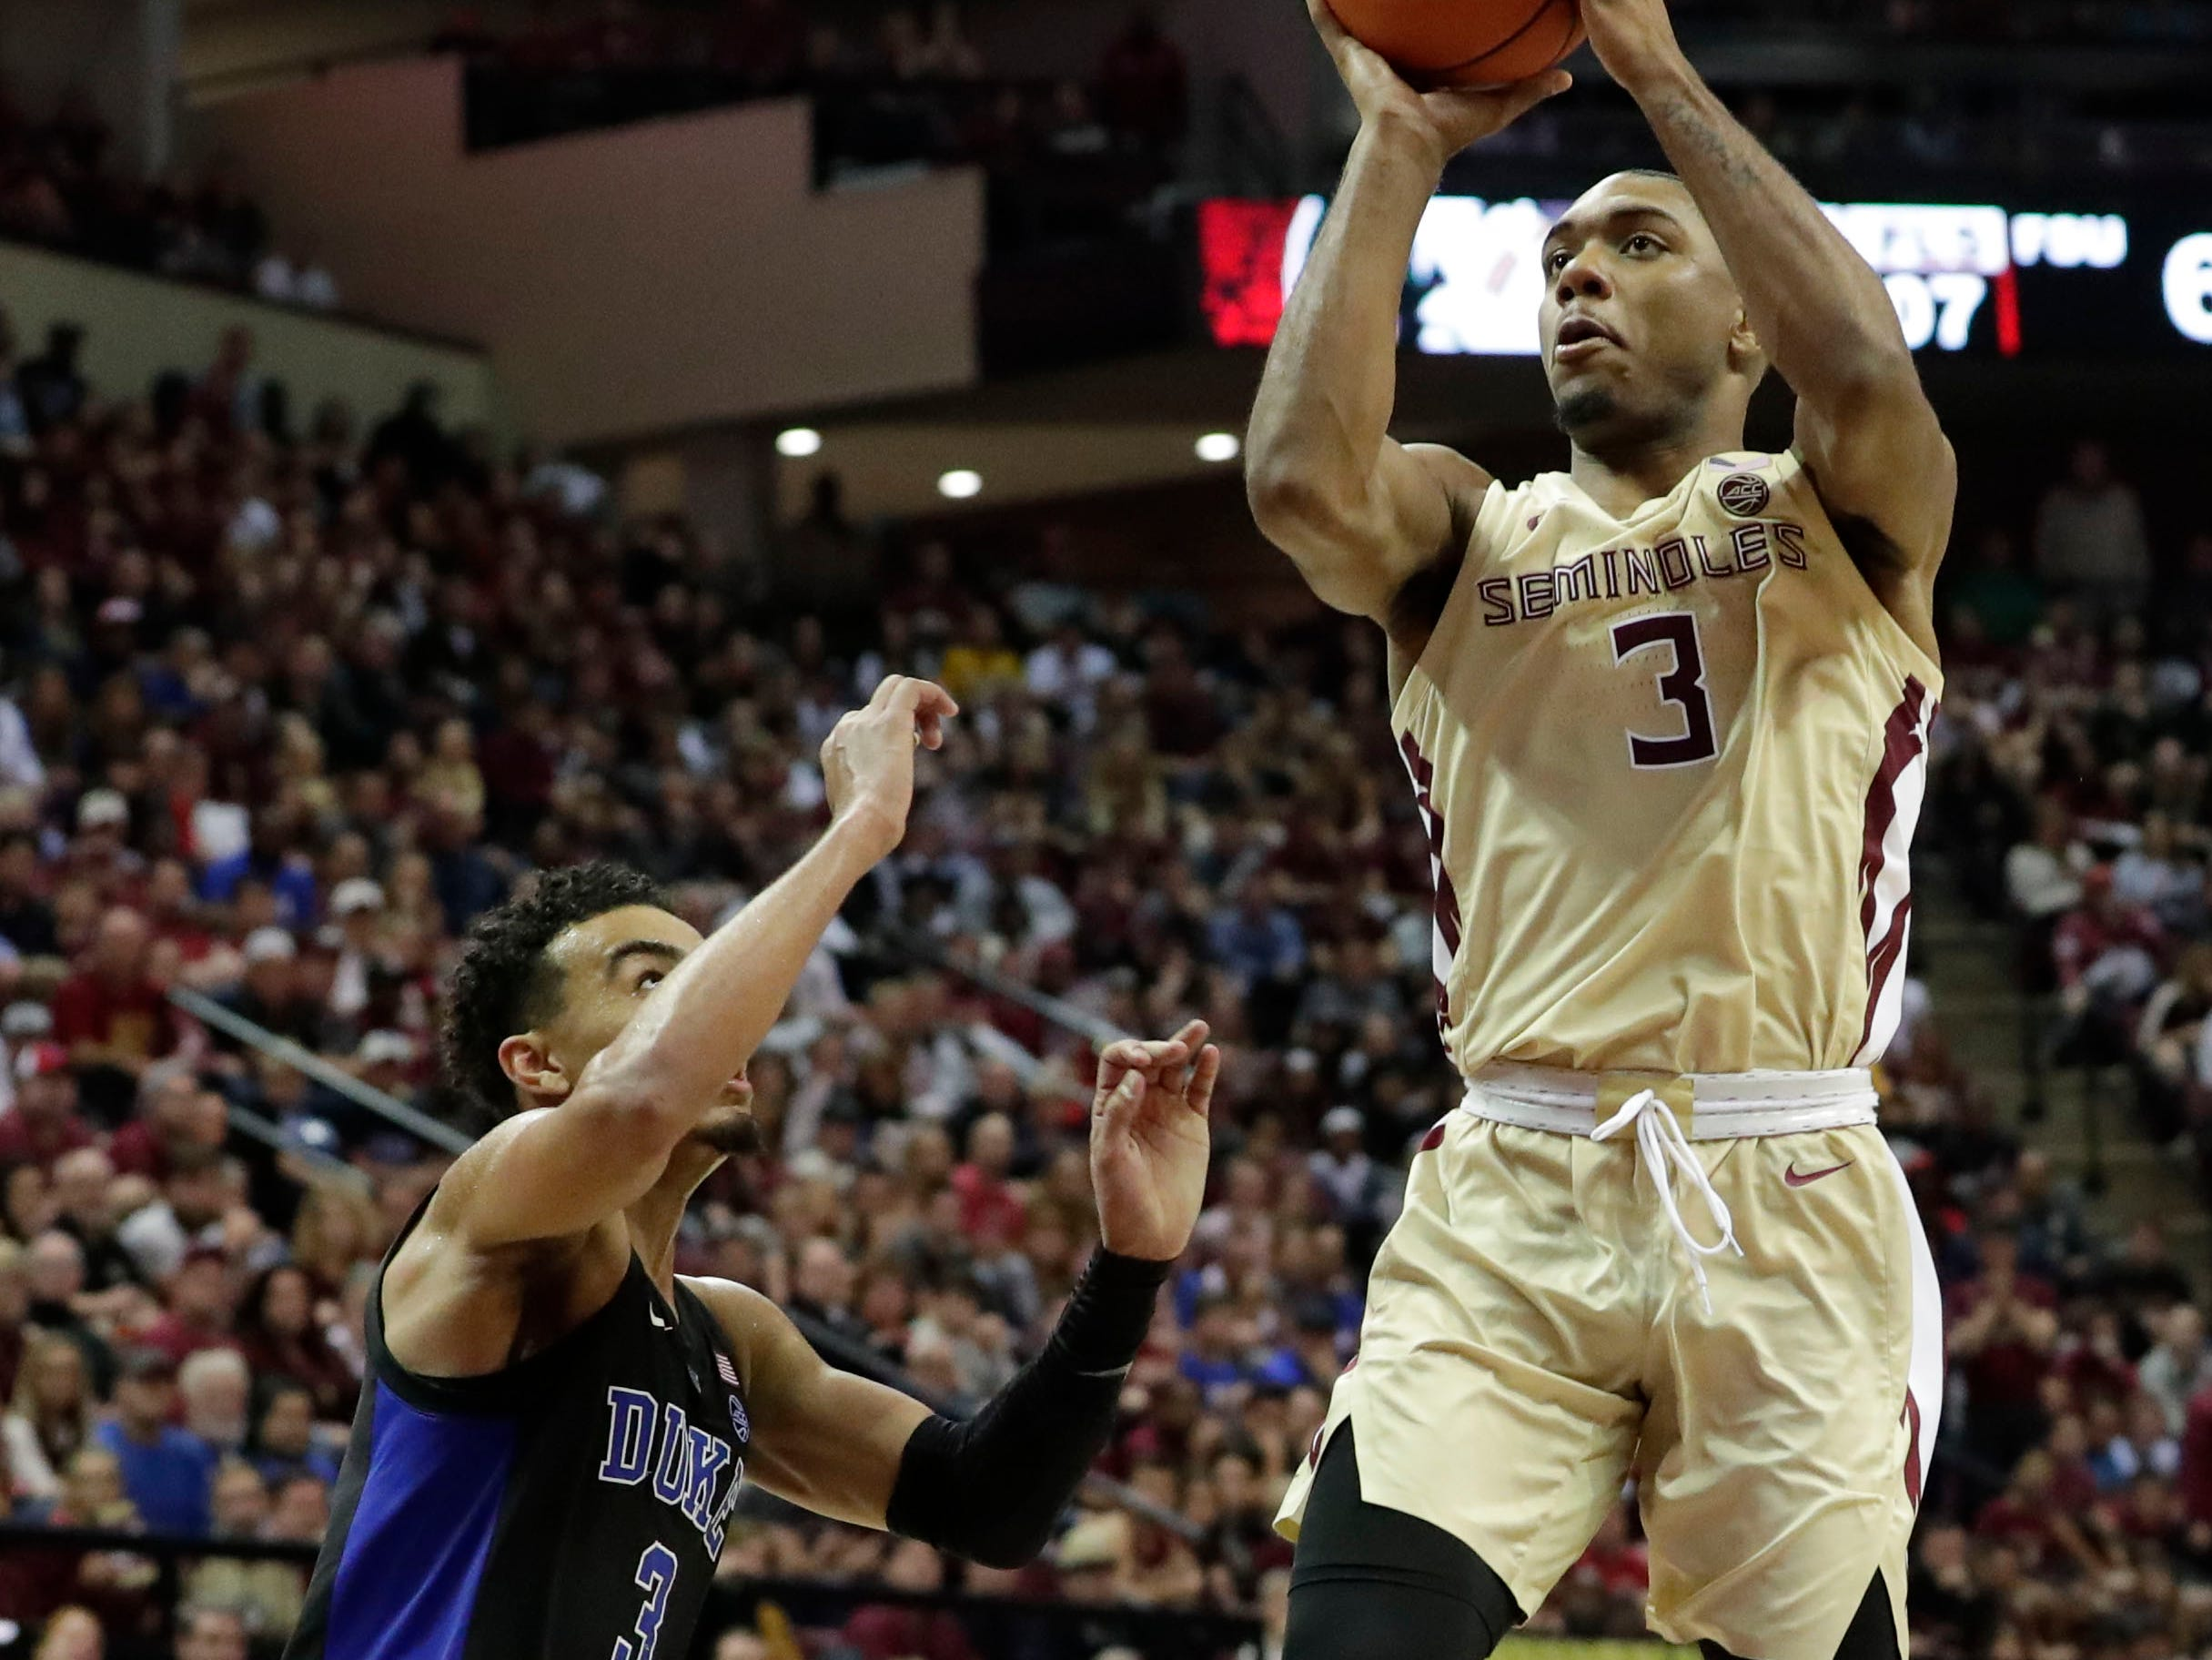 Florida State Seminoles guard Trent Forrest (3) shoots from inside the paint. Ranked 13 in the ACC, the Florida State Seminoles host the number 1 team, the Duke Blue Devils, at the Tucker Civic Center, Saturday, Jan. 12, 2019.